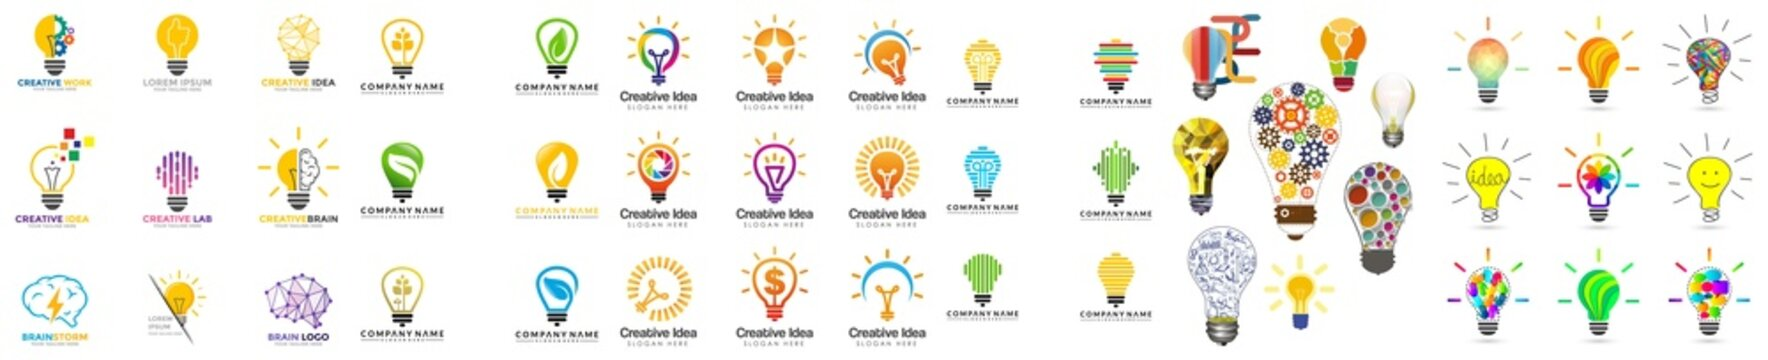 business ideas symbol. nd creative Can make the business successful as well. Light Bulb icon set, Idea icon symbol vector, Sharing business ideas black icon concept